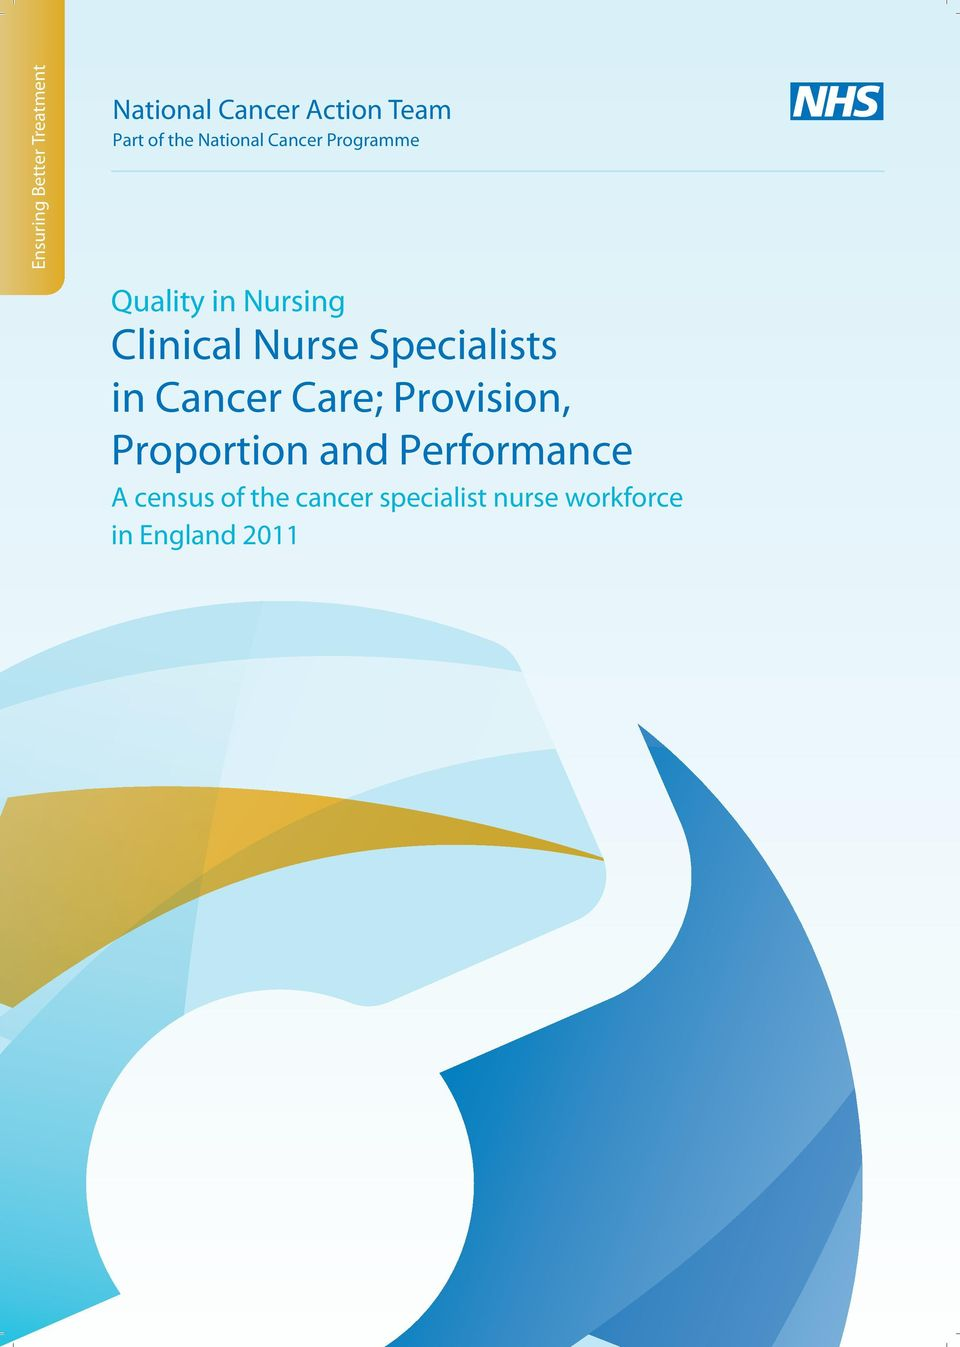 Quality in Nursing Clinical Nurse Specialists in Cancer Care